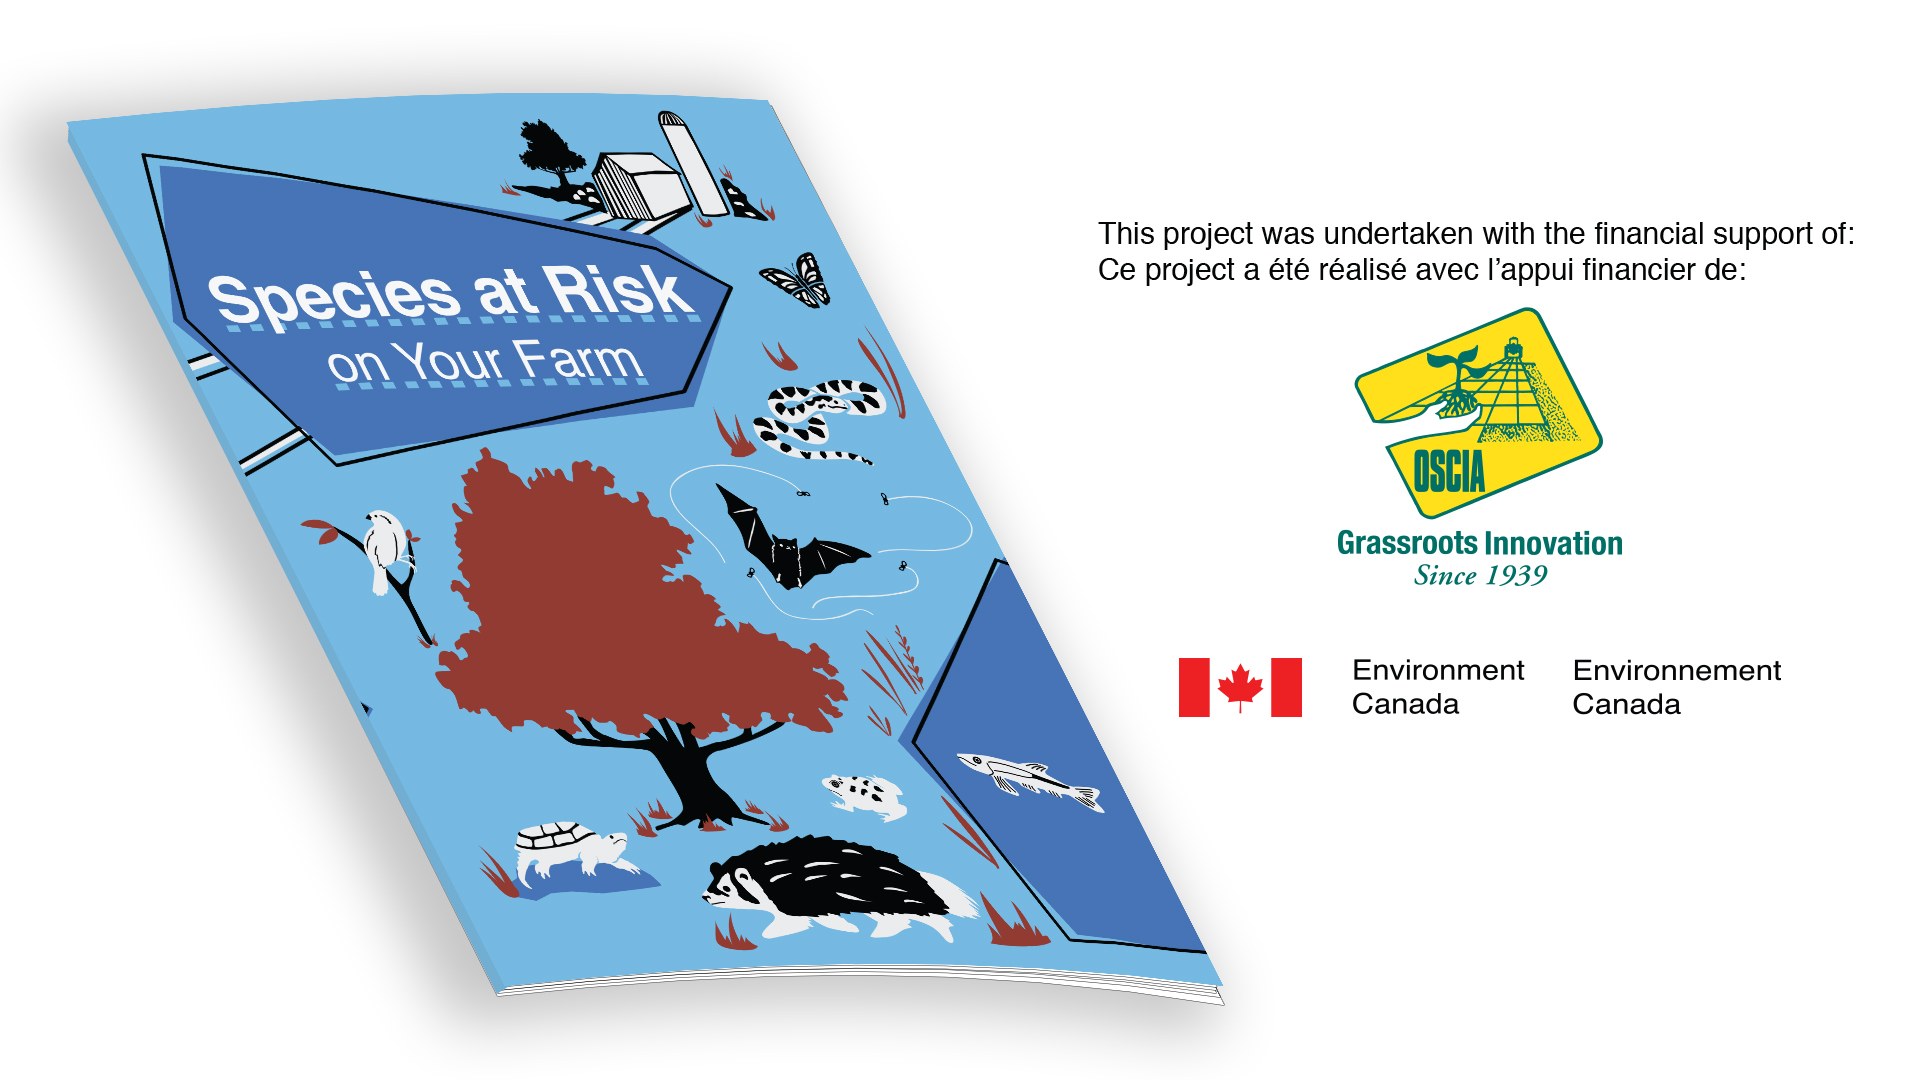 Species at Risk on Your Farm - Activities Booklet